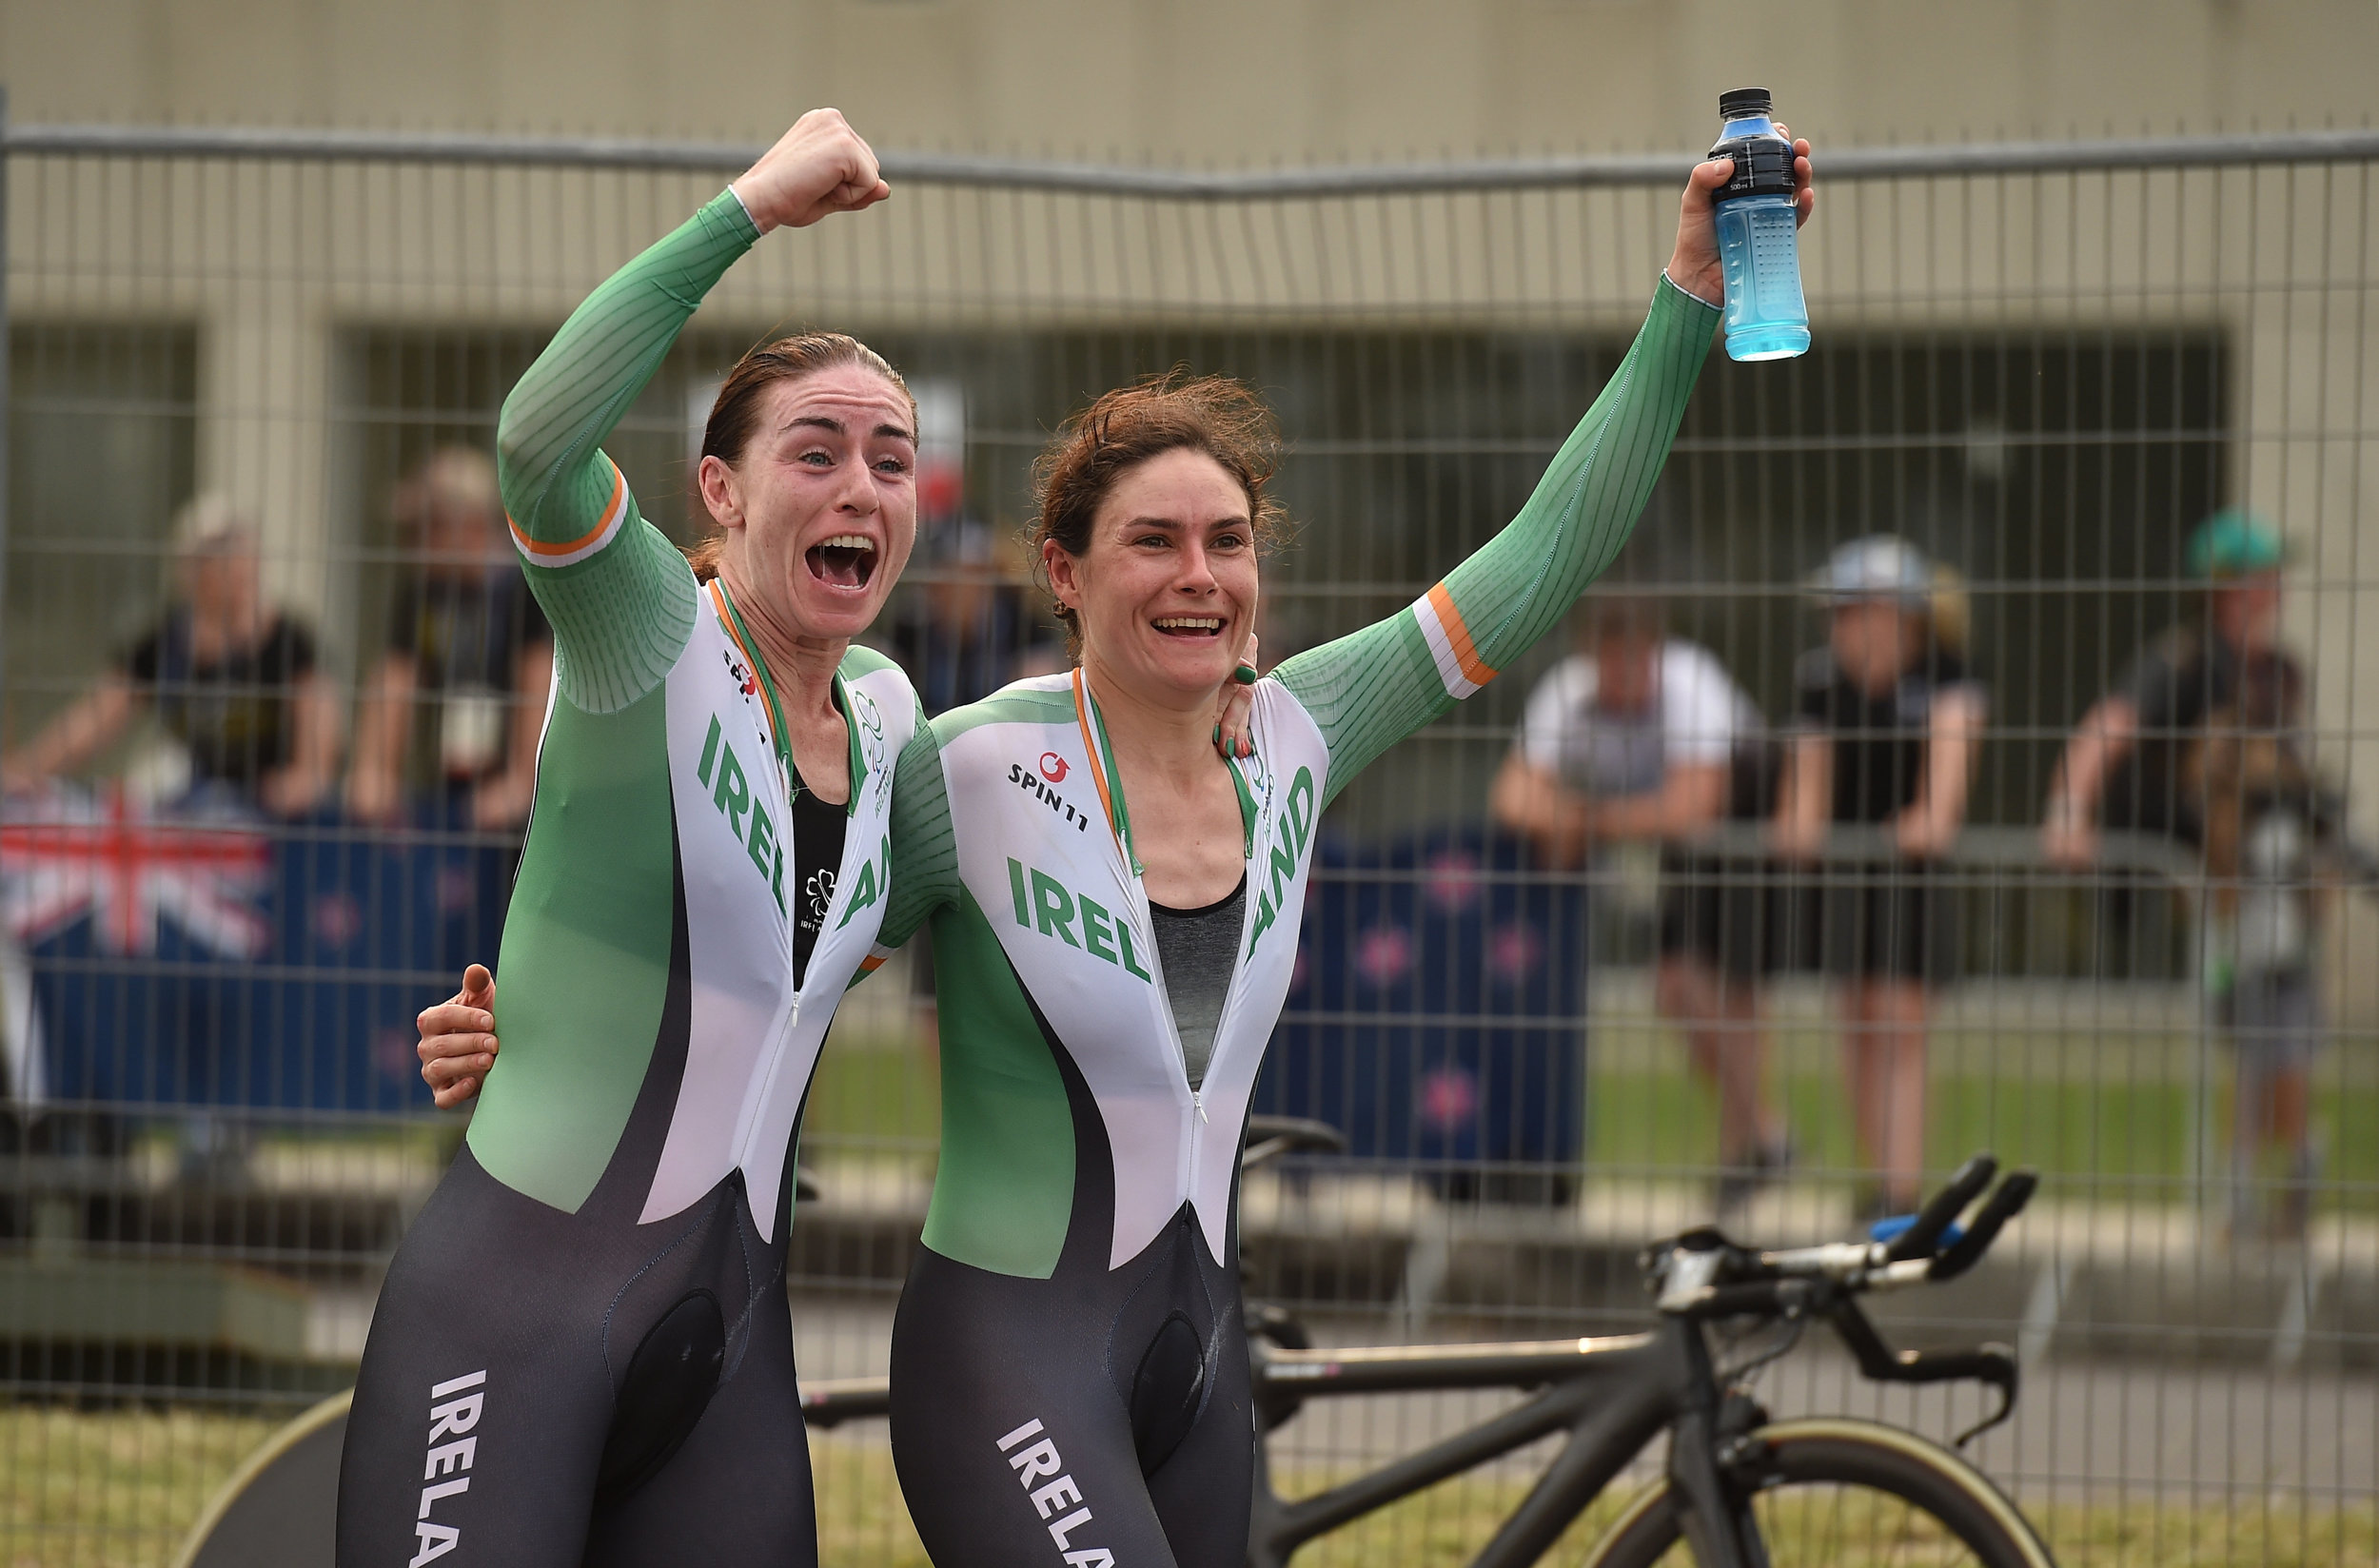 Cycling: Katie-George Dunlevy & Eve McCrystal when they realised they won Gold in the Women's B Road Time Trial